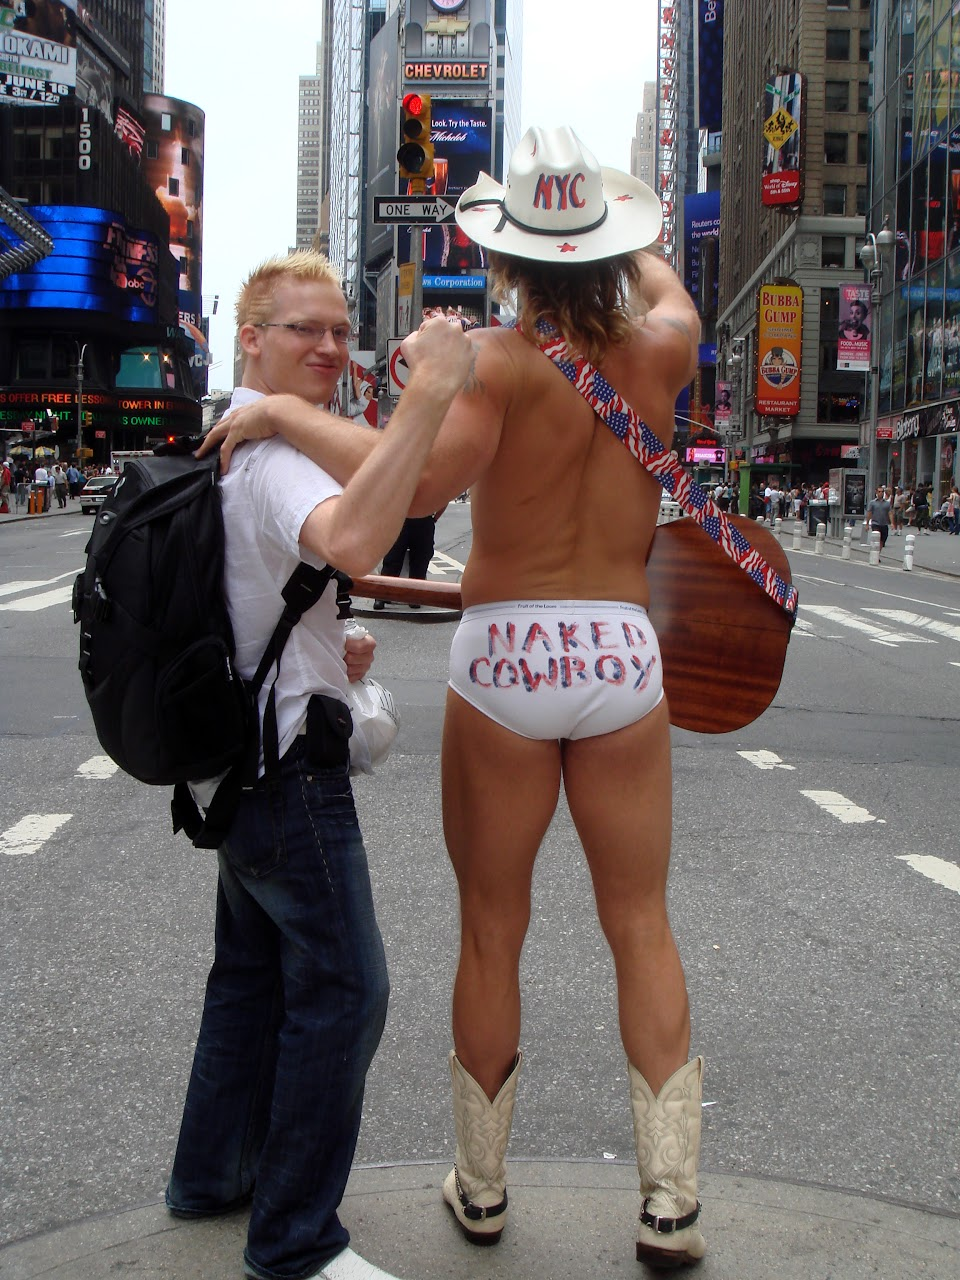 ... naked cowboy in New York City, New York, United States